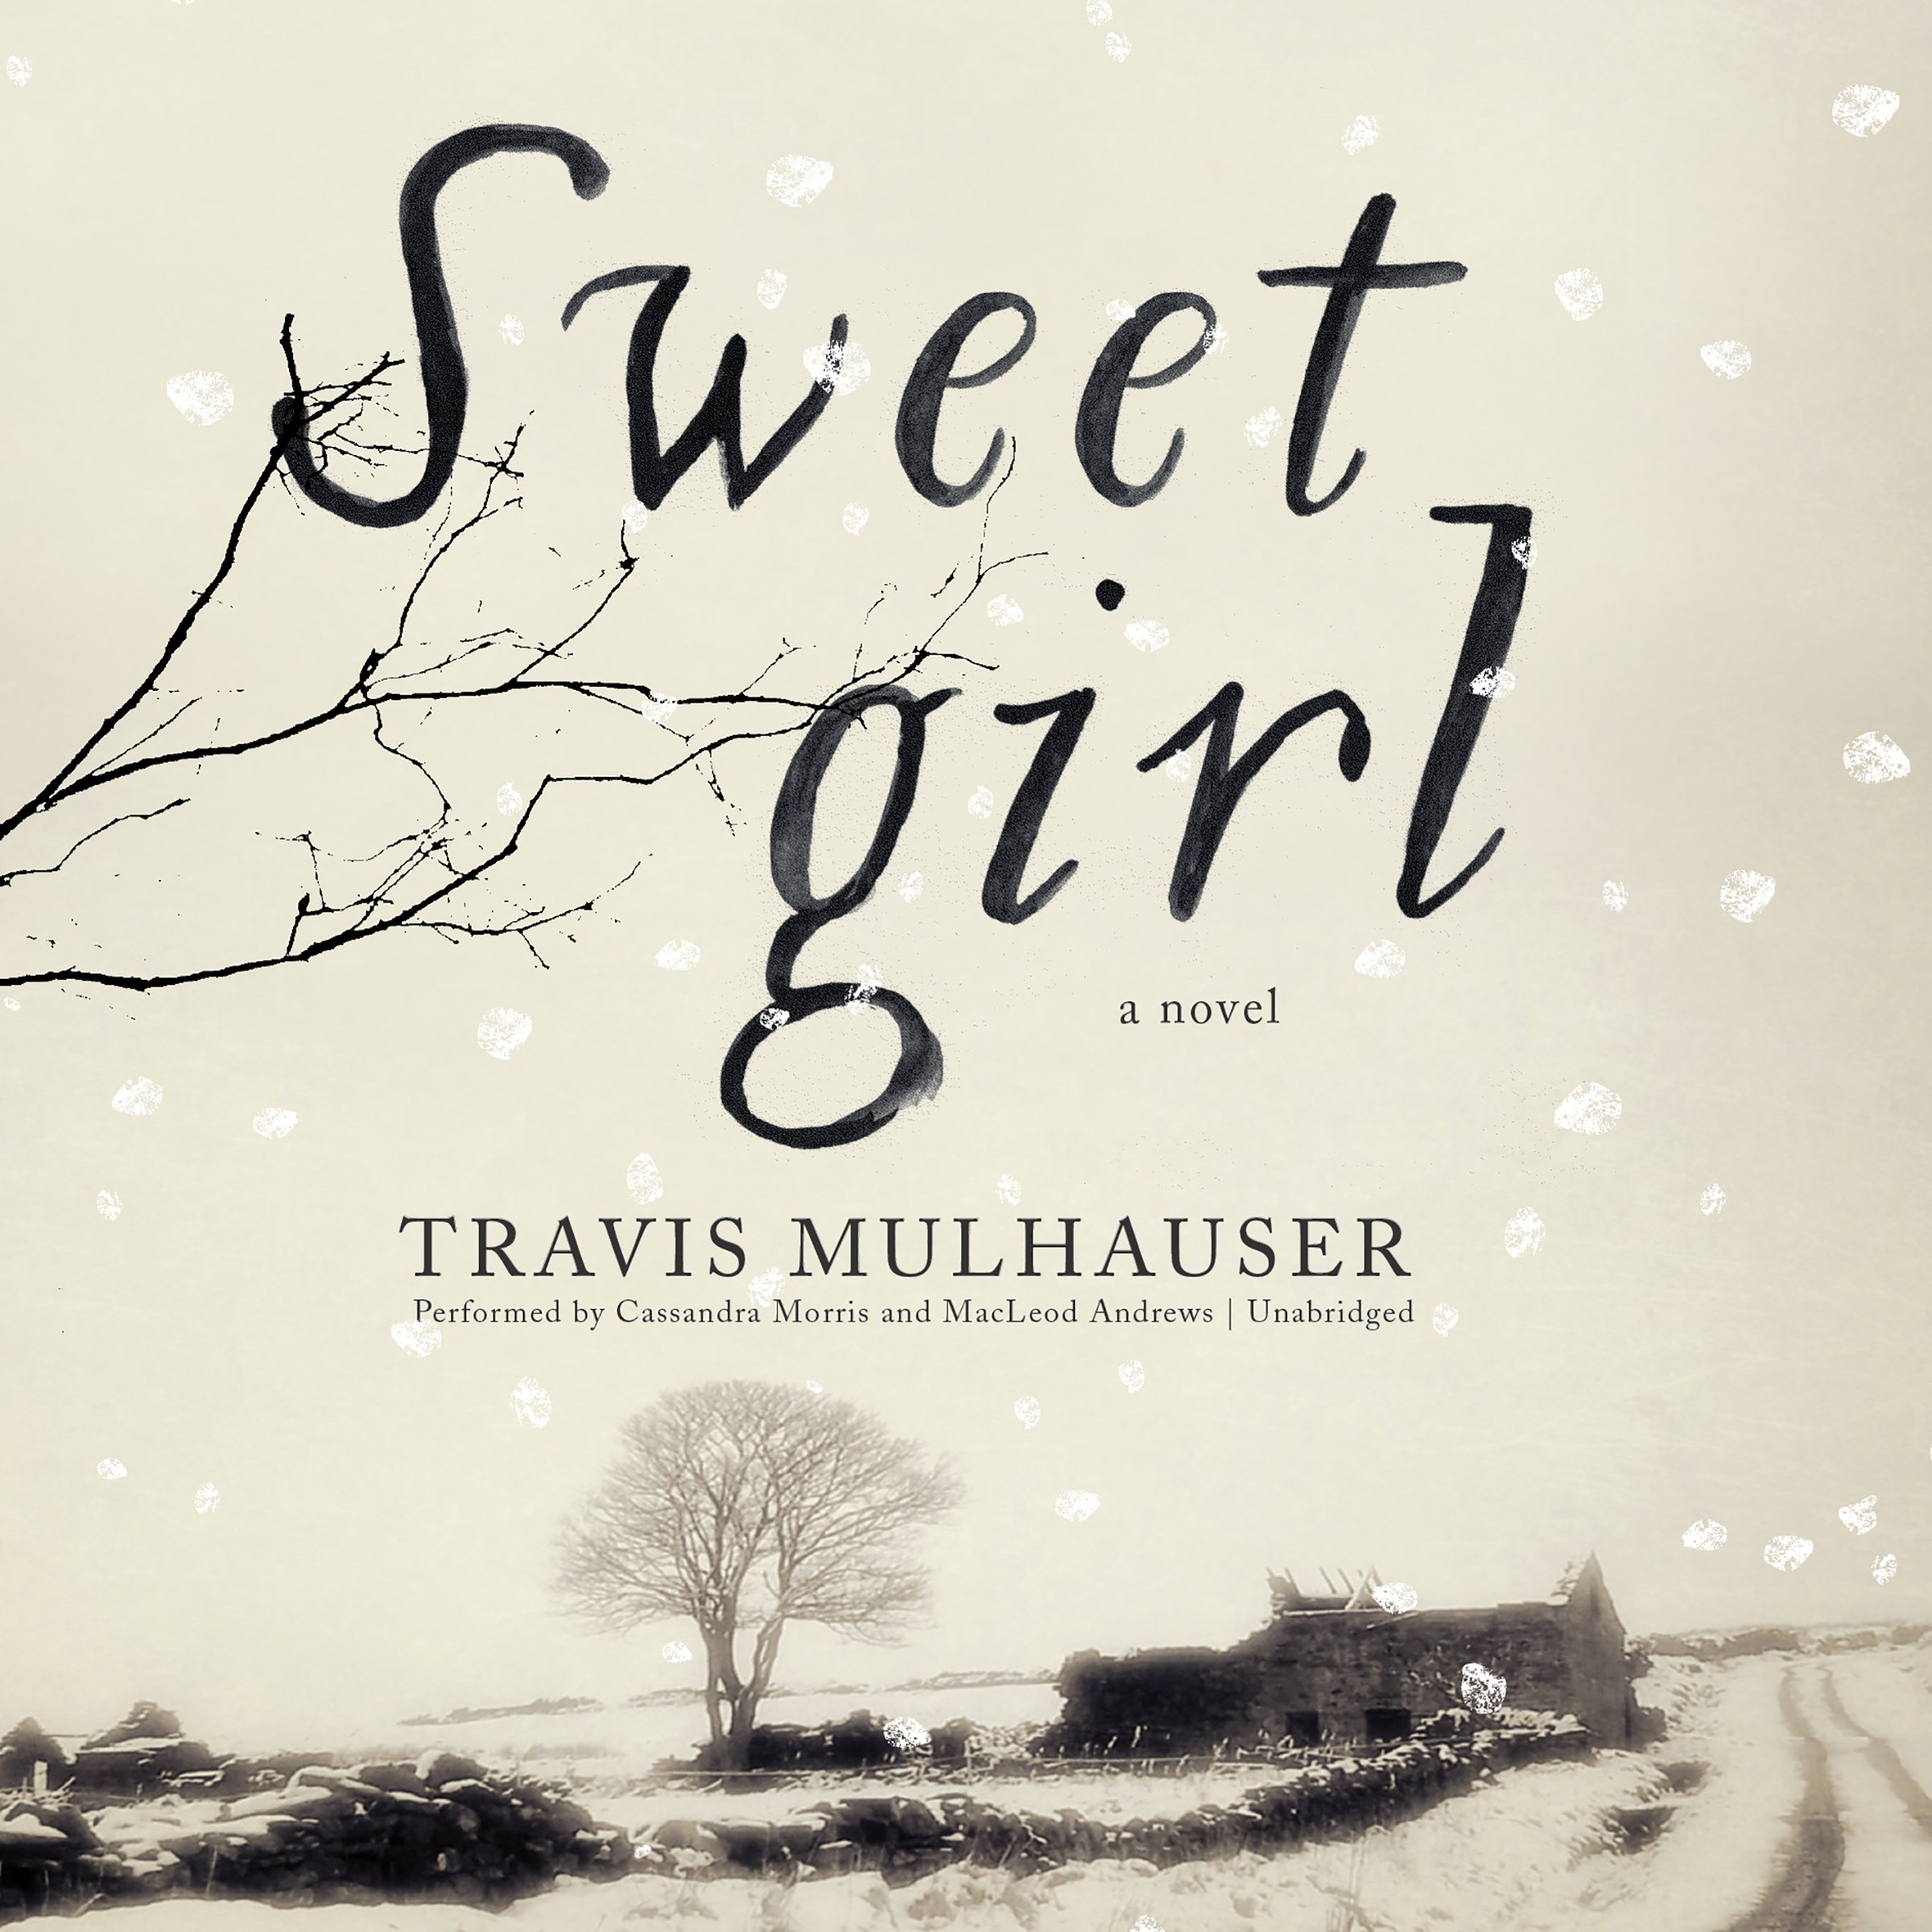 IF MY BOOK: Travis Mulhauser